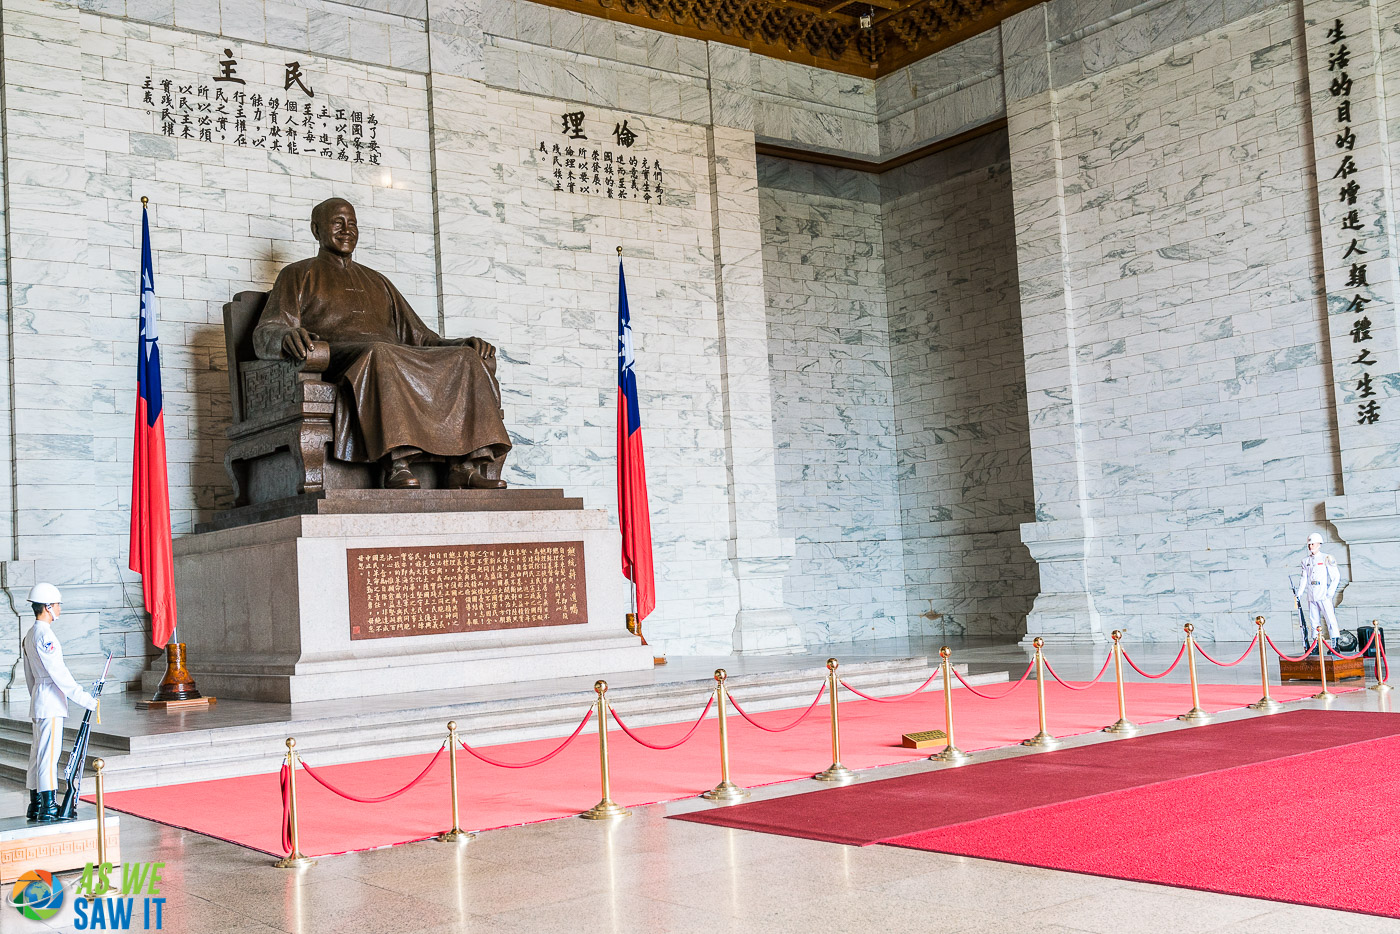 Chiang Kai-shek memorial with two motionless honor guards.